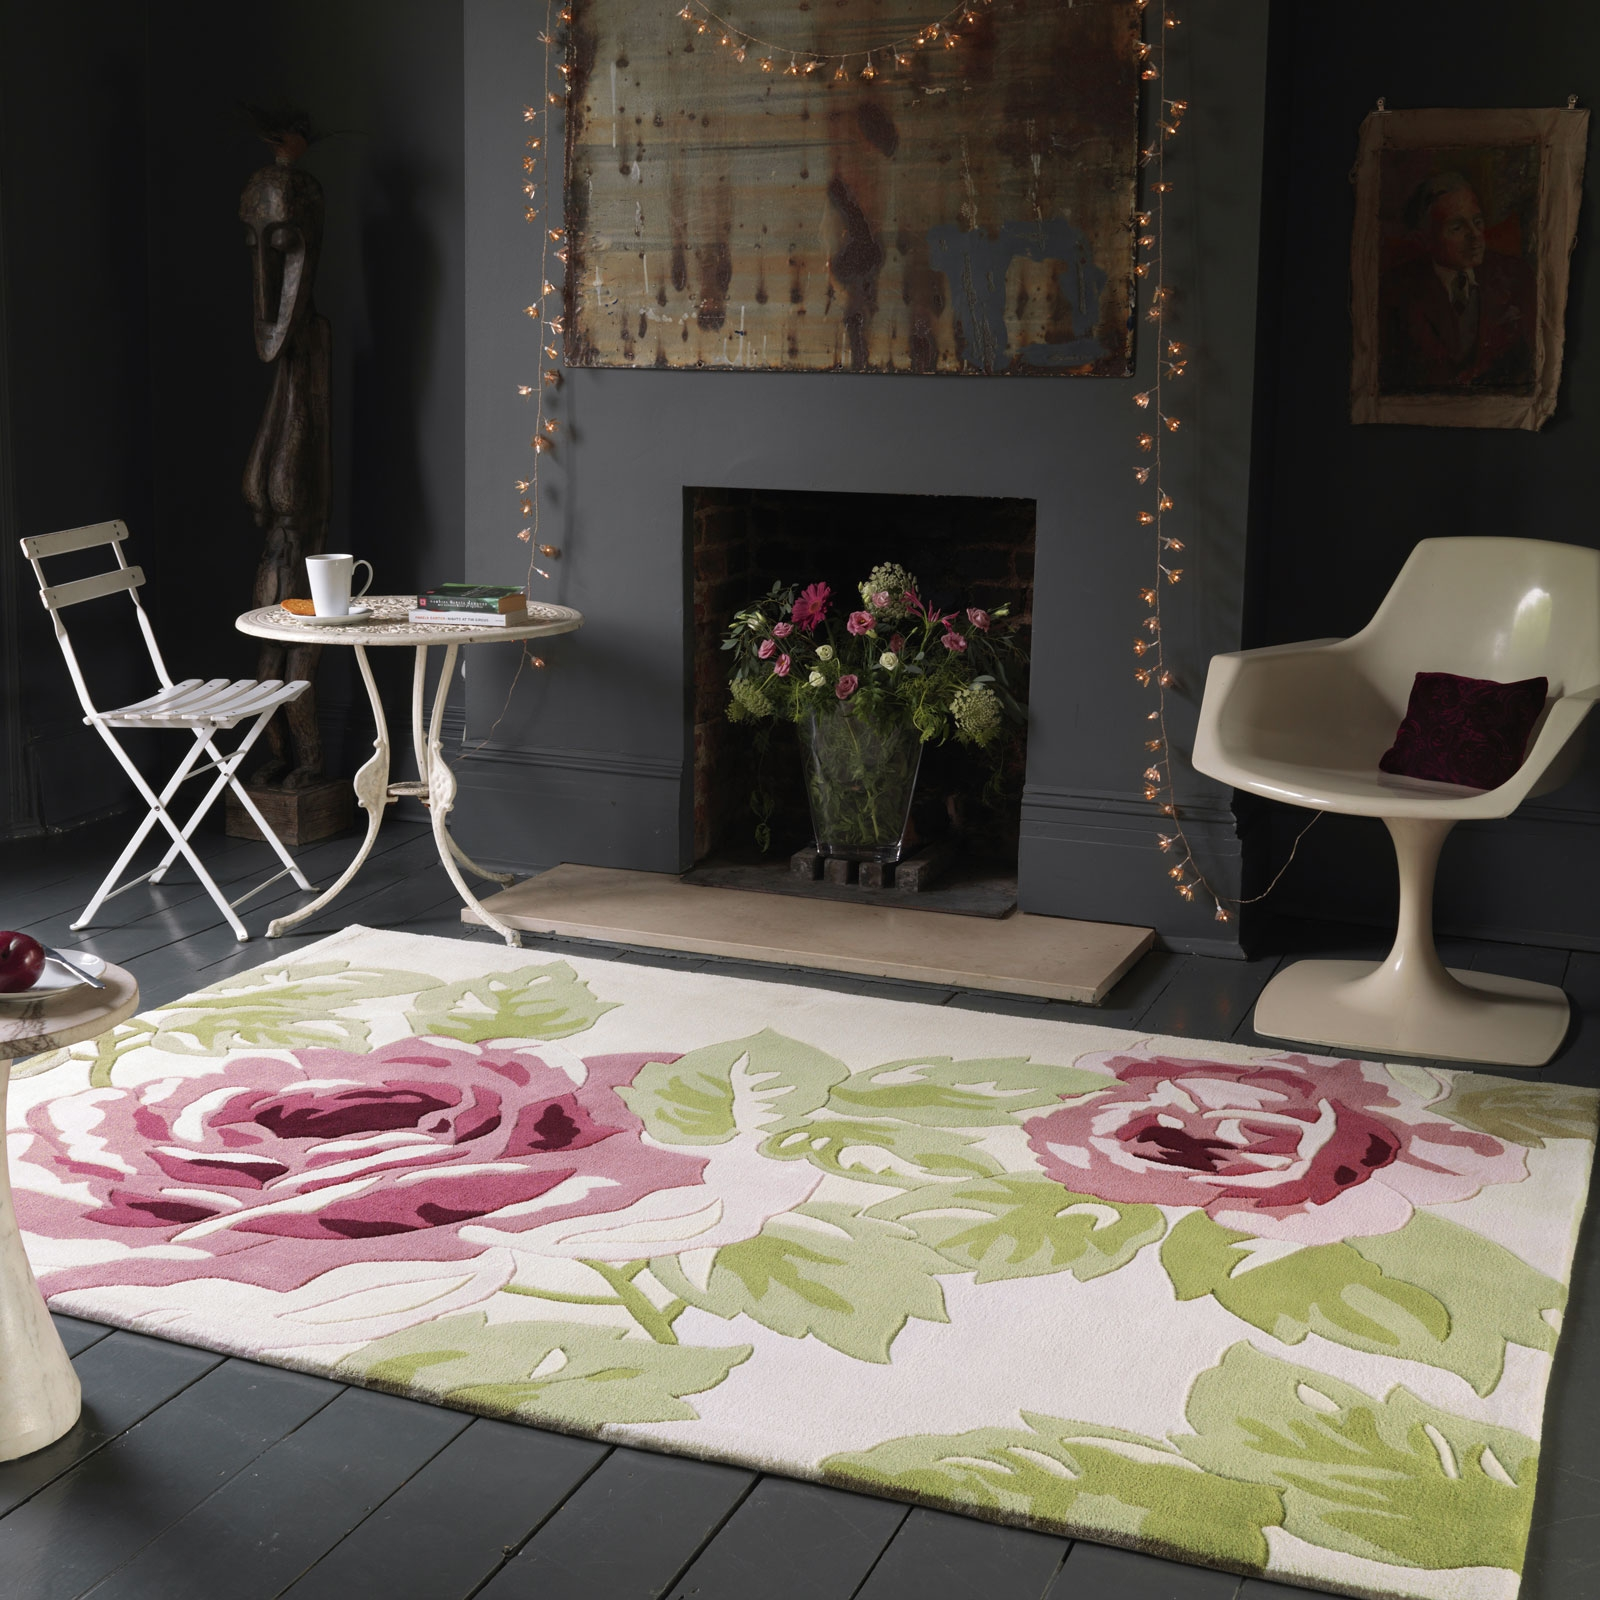 Harlequin Rugs Uk Roselawnlutheran For Harlequin Rugs (Image 5 of 15)